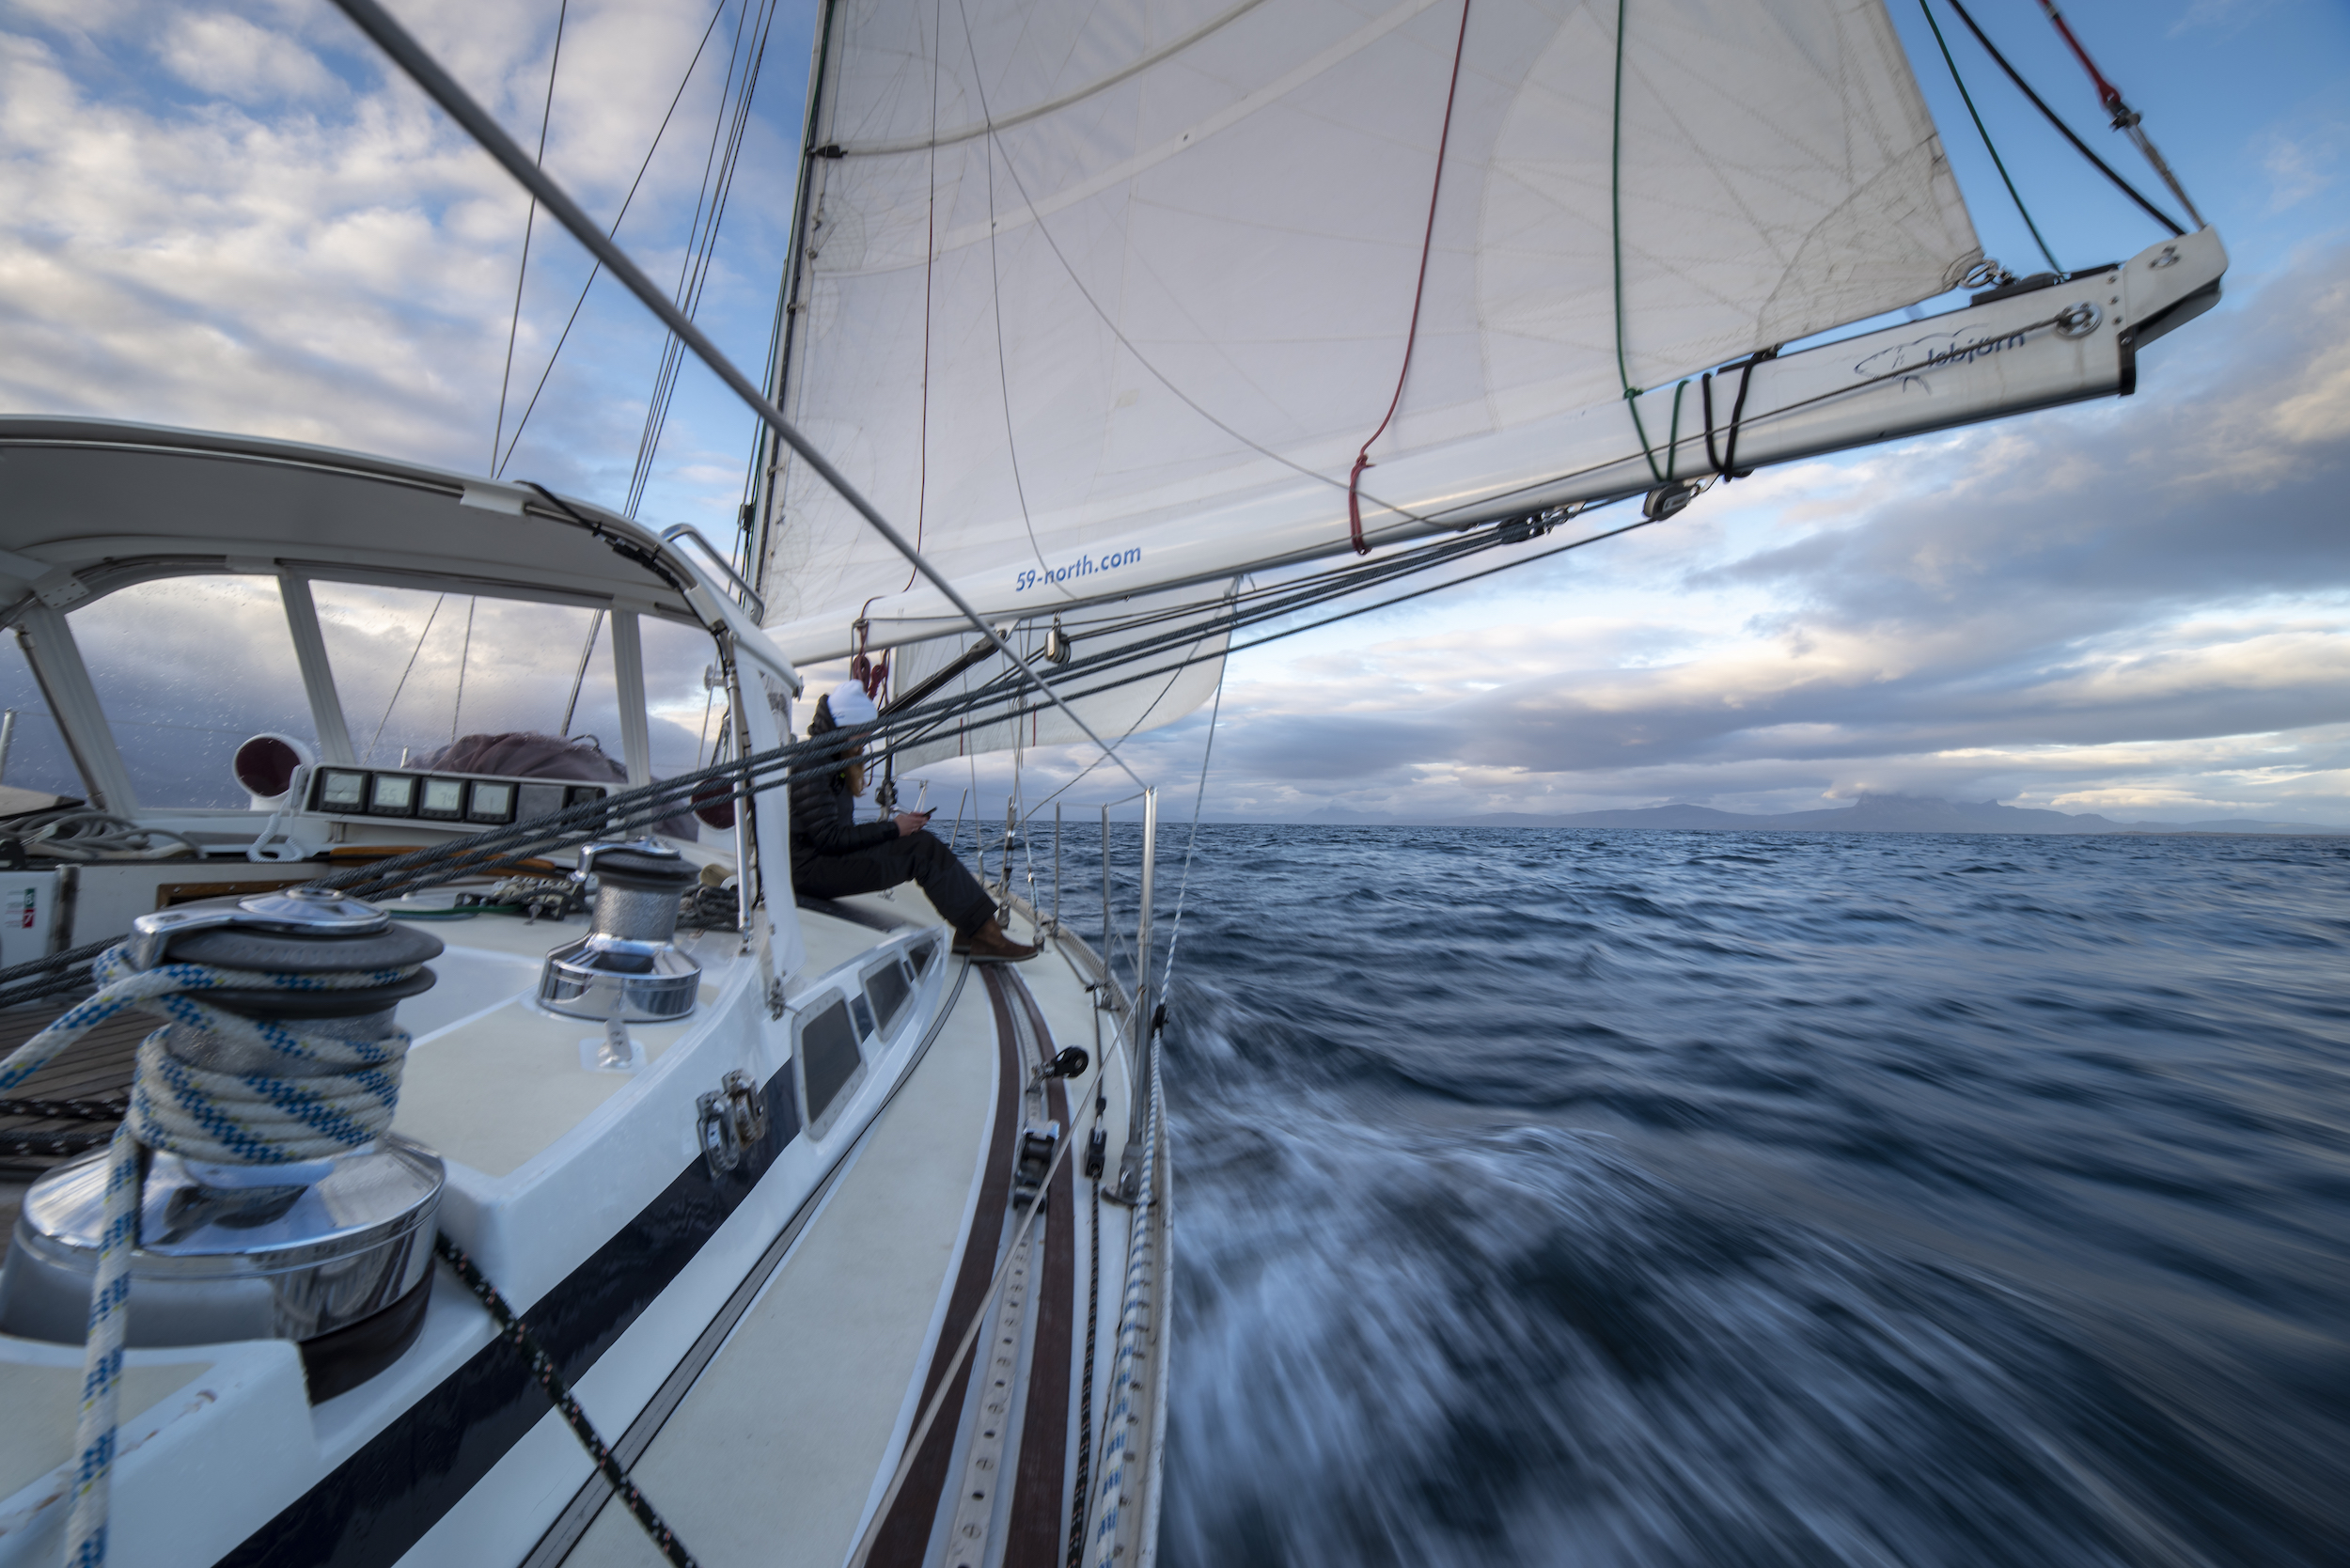 Vanilla sky in the late evening Arctic light sailing downwind in the Vestfjord.